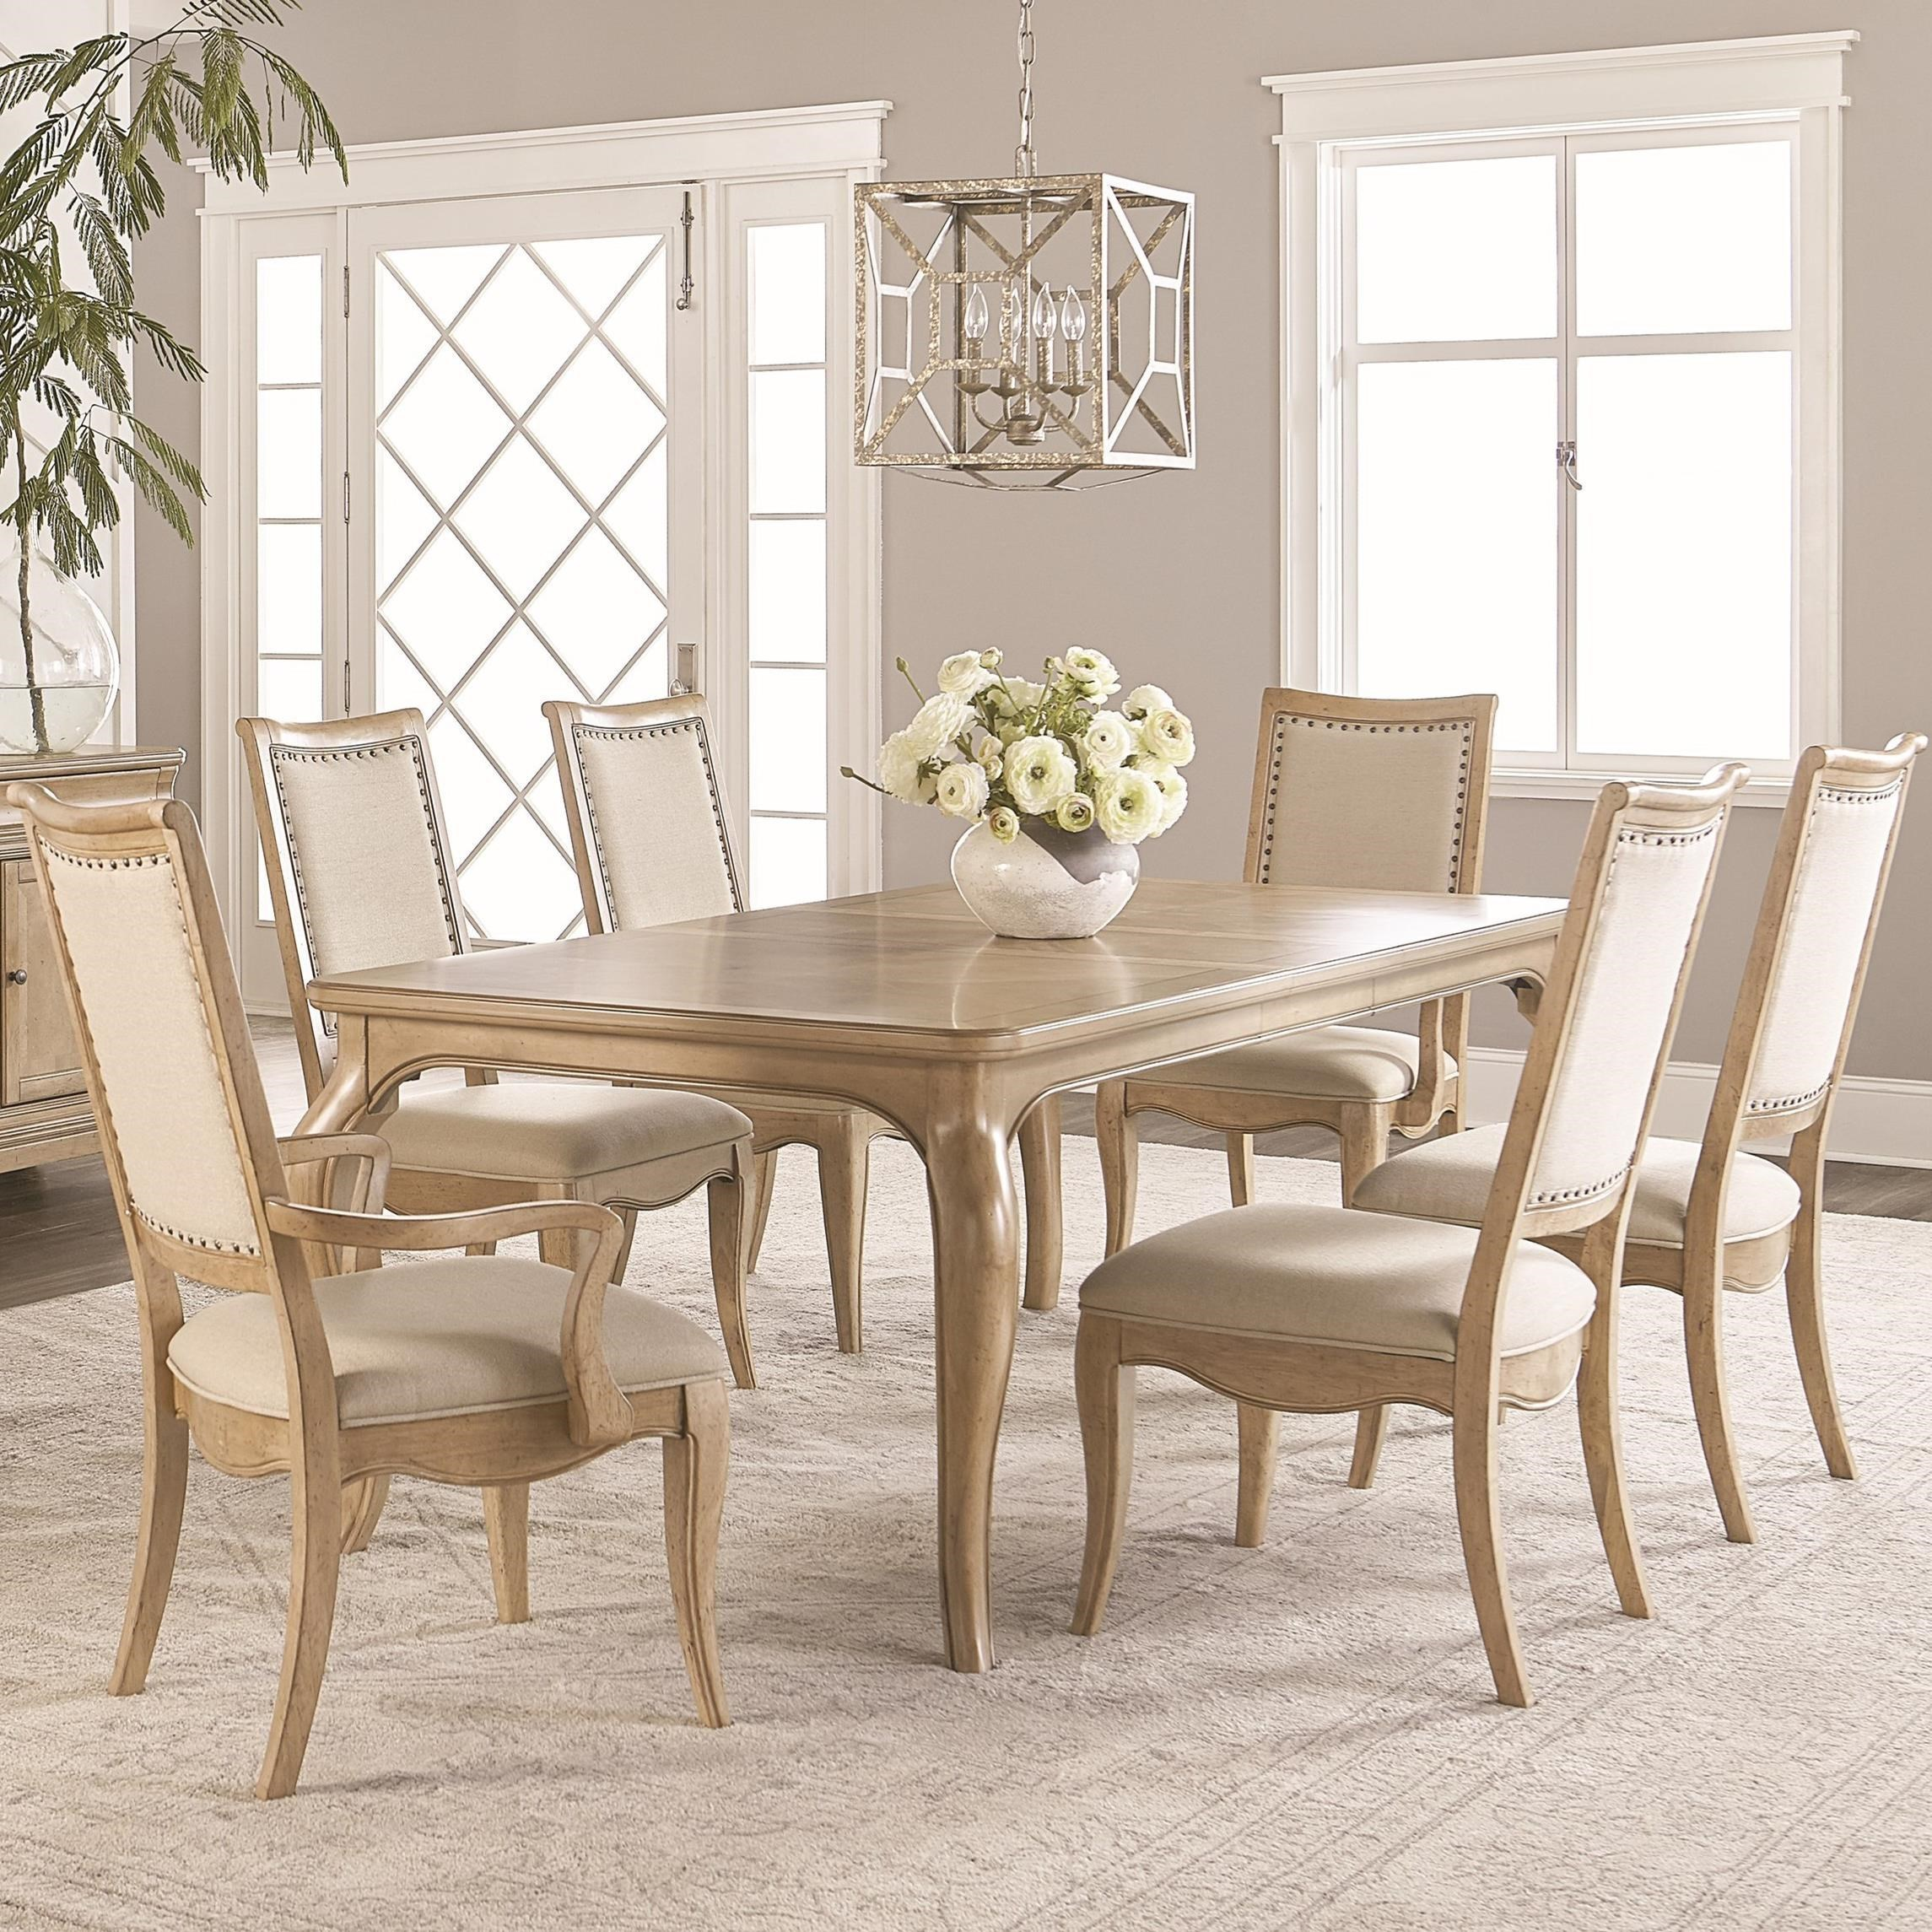 7 piece dining table extendable dining ashby woods piece dining table and chair set by legacy classic